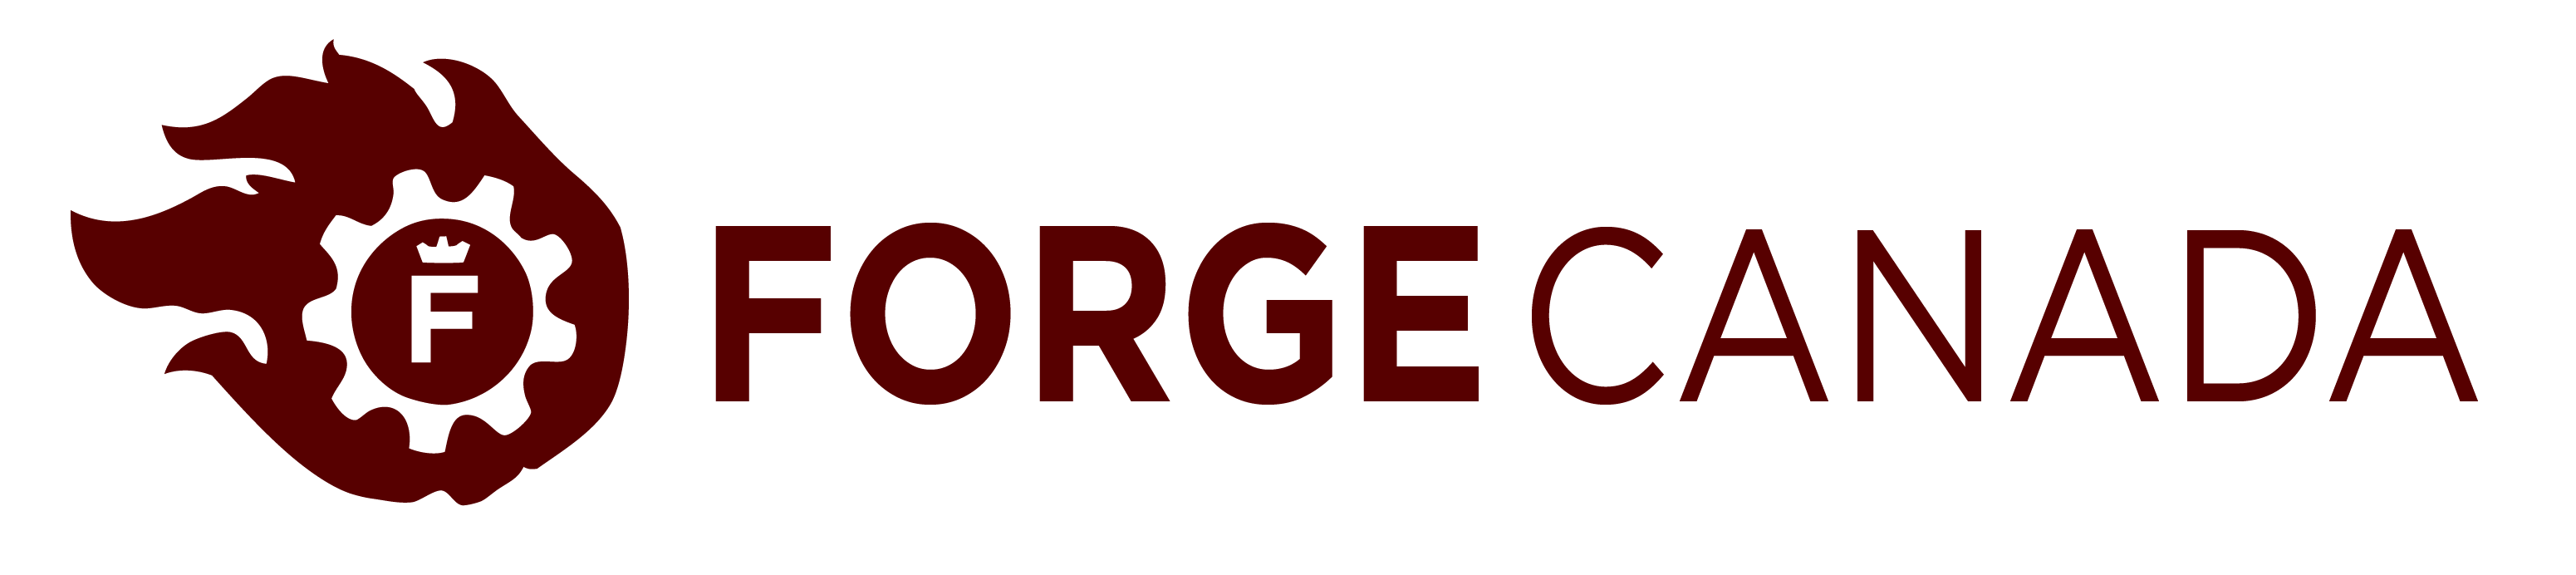 Forge Canada